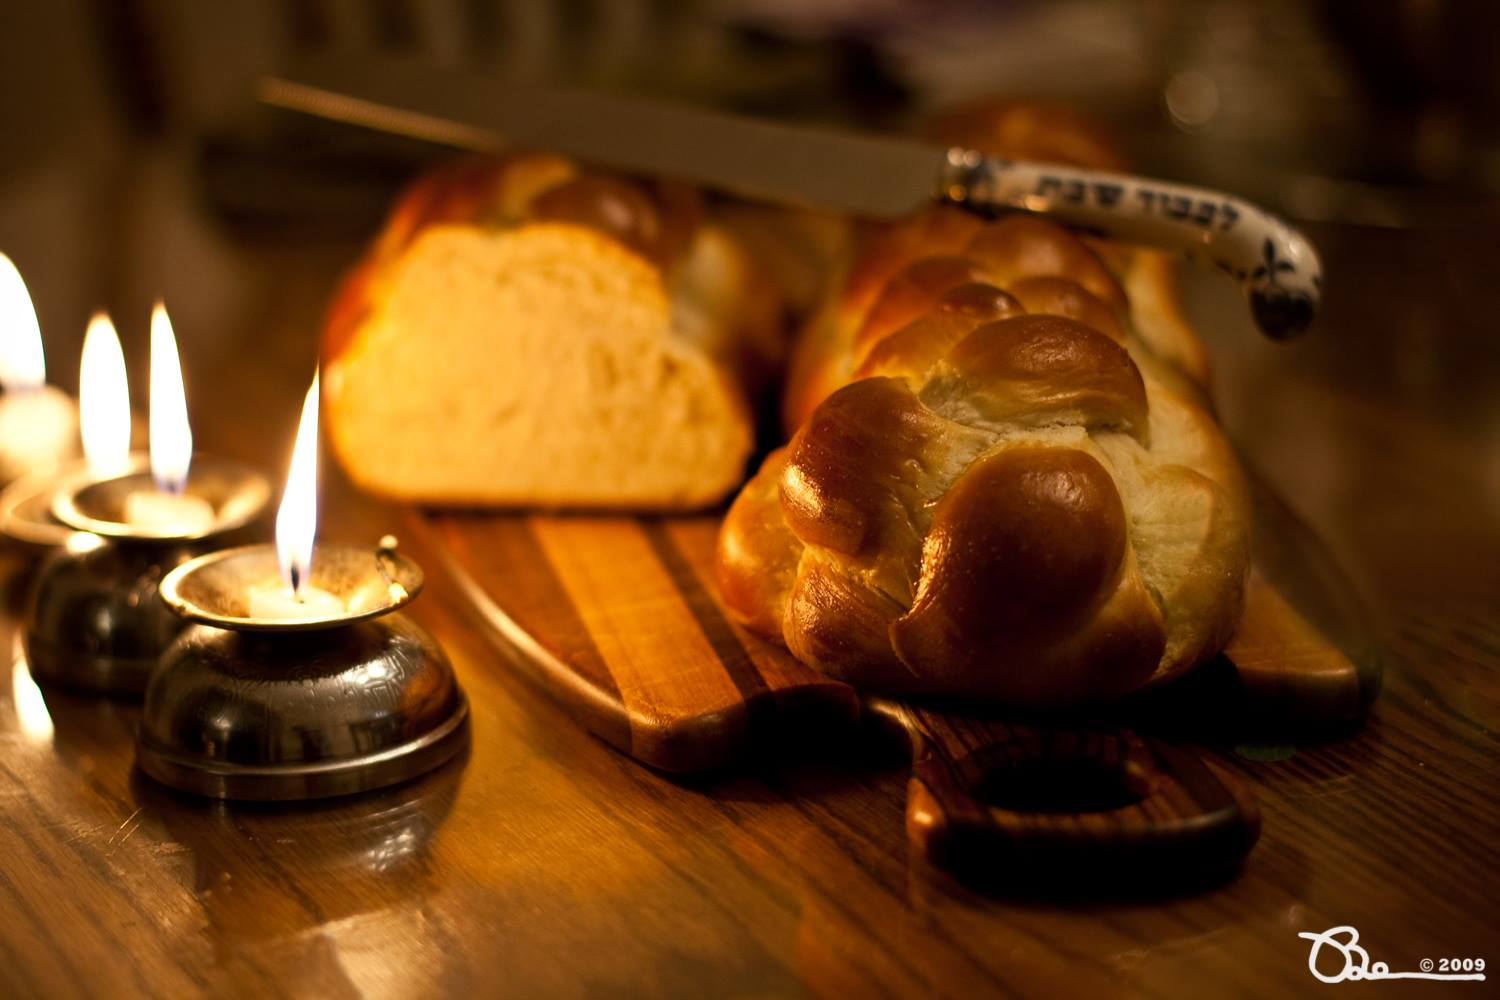 """<a href=""""https://www.tbzbrookline.org/event/intergenerational-shabbat.html""""                                     target="""""""">                                                                 <span class=""""slider_title"""">                                     Shabbat Vayigash: Intergenerational Shabbat!                                </span>                                                                 </a>                                                                                                                                                                                       <span class=""""slider_description"""">Join us Saturday, December 15th at 11:00am for a vibrant Intergenerational Shabbat service in the Sanctuary, including a shorter-than-usual Shacharit Service and Torah service with a parsha play starring TBZ kids and adults!</span>                                                                                     <a href=""""https://www.tbzbrookline.org/event/intergenerational-shabbat.html"""" class=""""slider_link""""                             target="""""""">                             LEARN MORE                            </a>"""